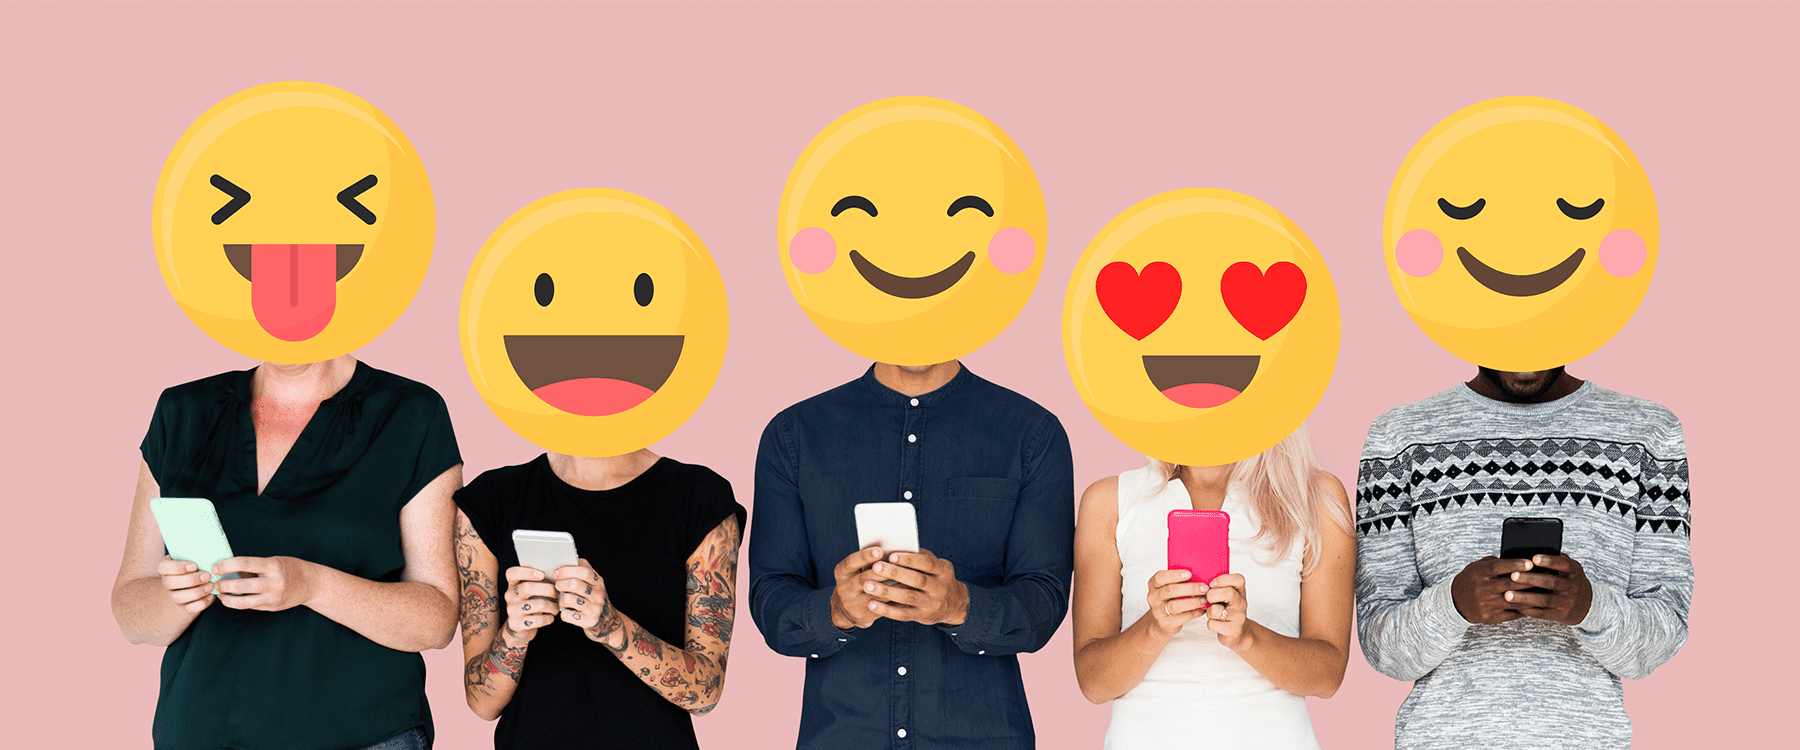 How GIFs and Emojis Give Your Business Personality Image